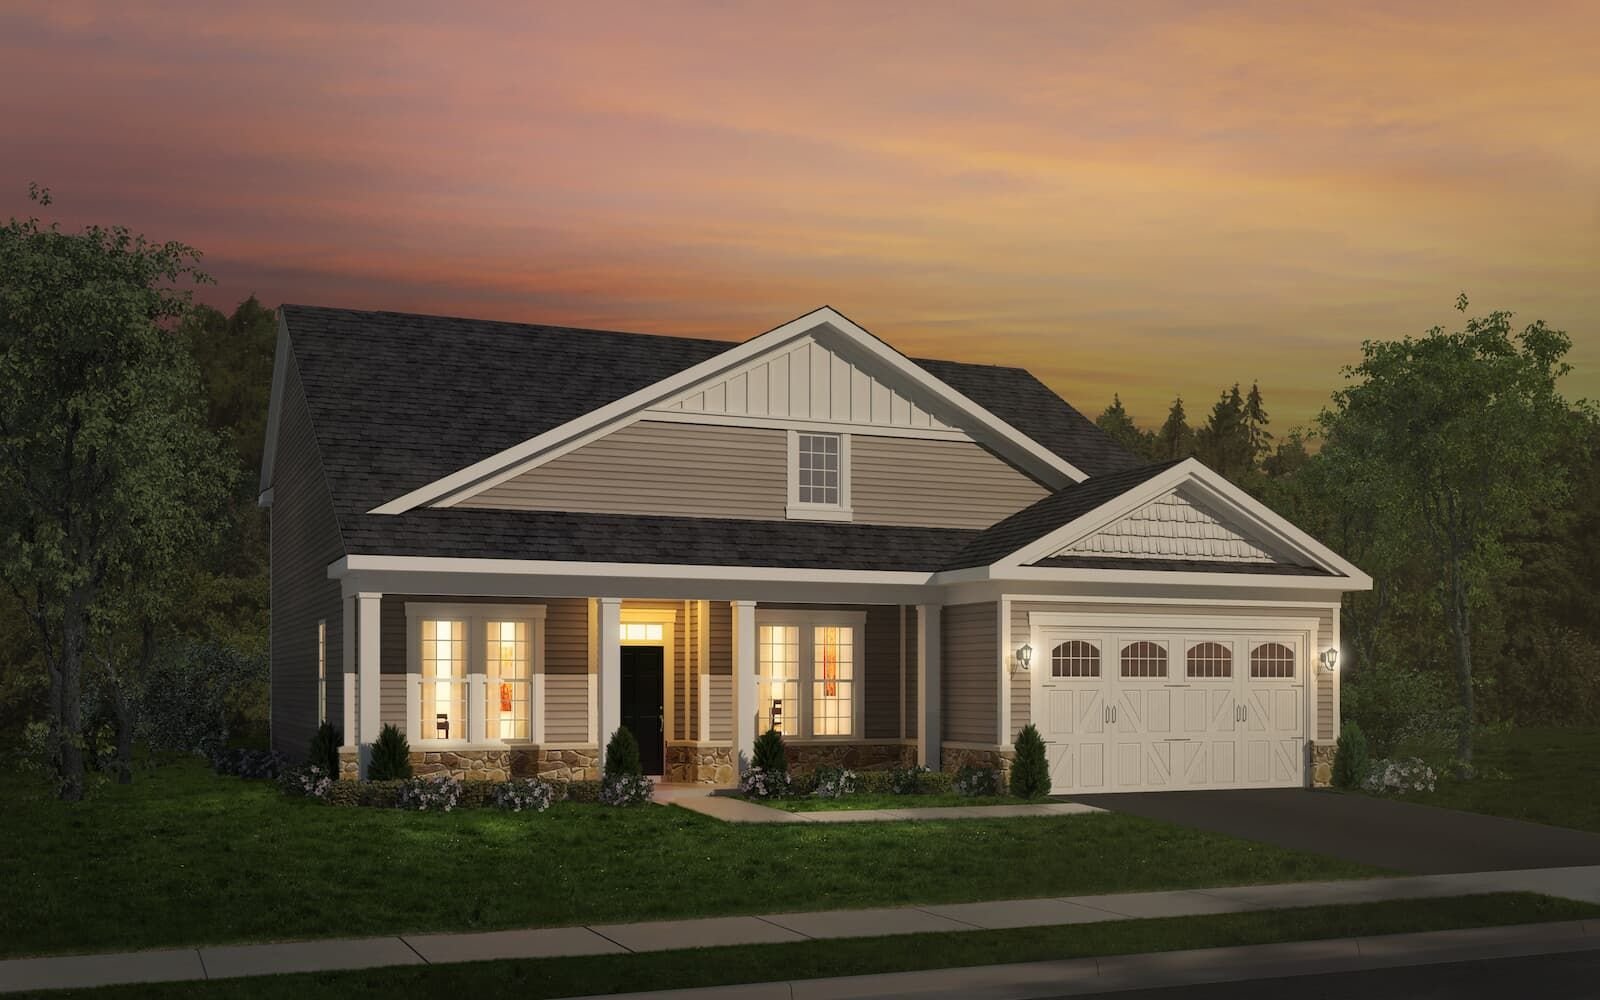 Exterior:Elevation 1 of the Pearson a home design at Easton Village by Brookfield Residential